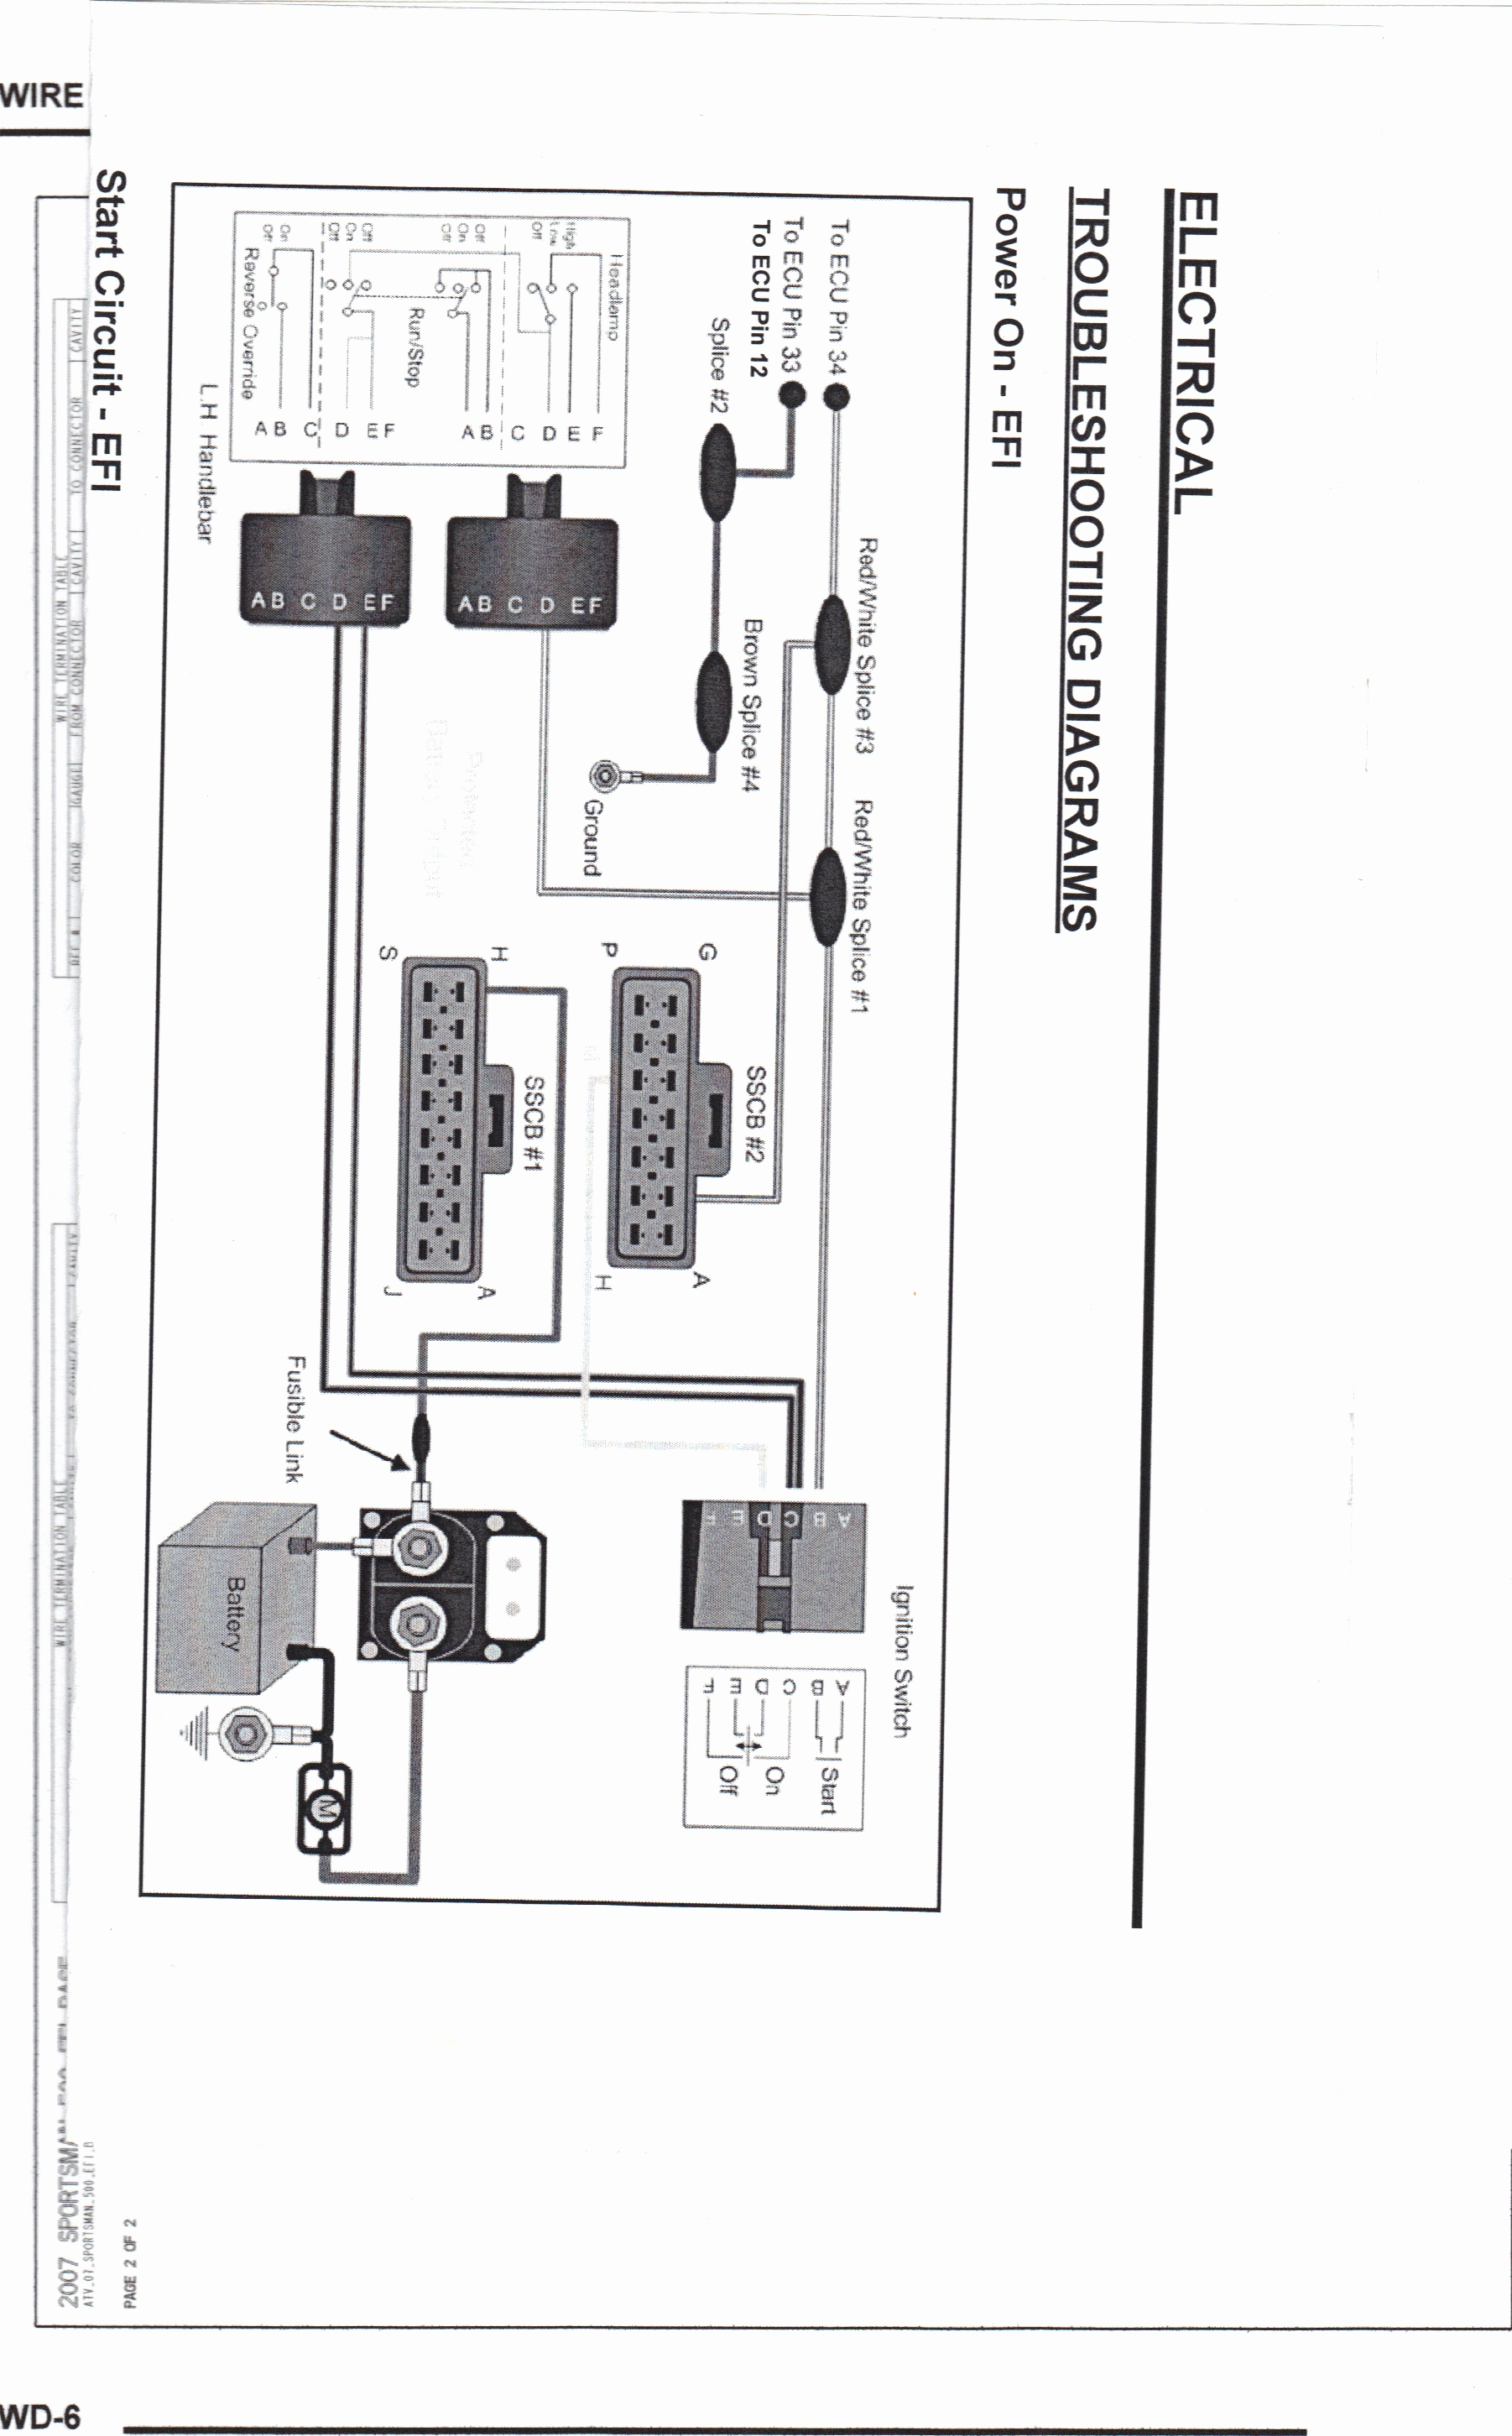 1999 Sportsman 500 Wiring Diagram